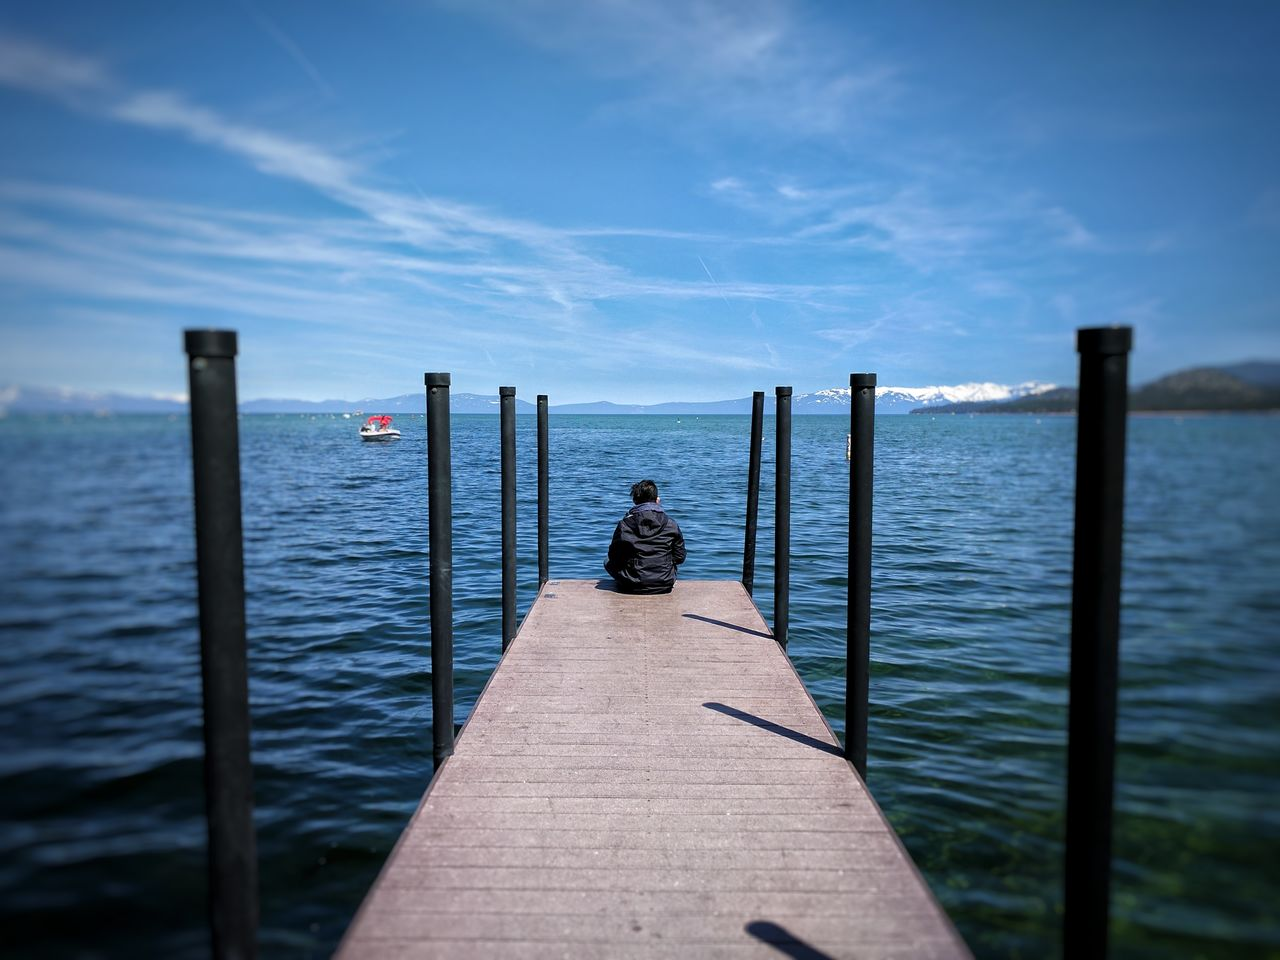 Water Sea Pier One Person Day Jetty Outdoors Horizon Over Water Sky Nature One Man Only Leisure Activity Blue People Scenics Adult Only Men Beauty In Nature Adults Only Neighborhood Map